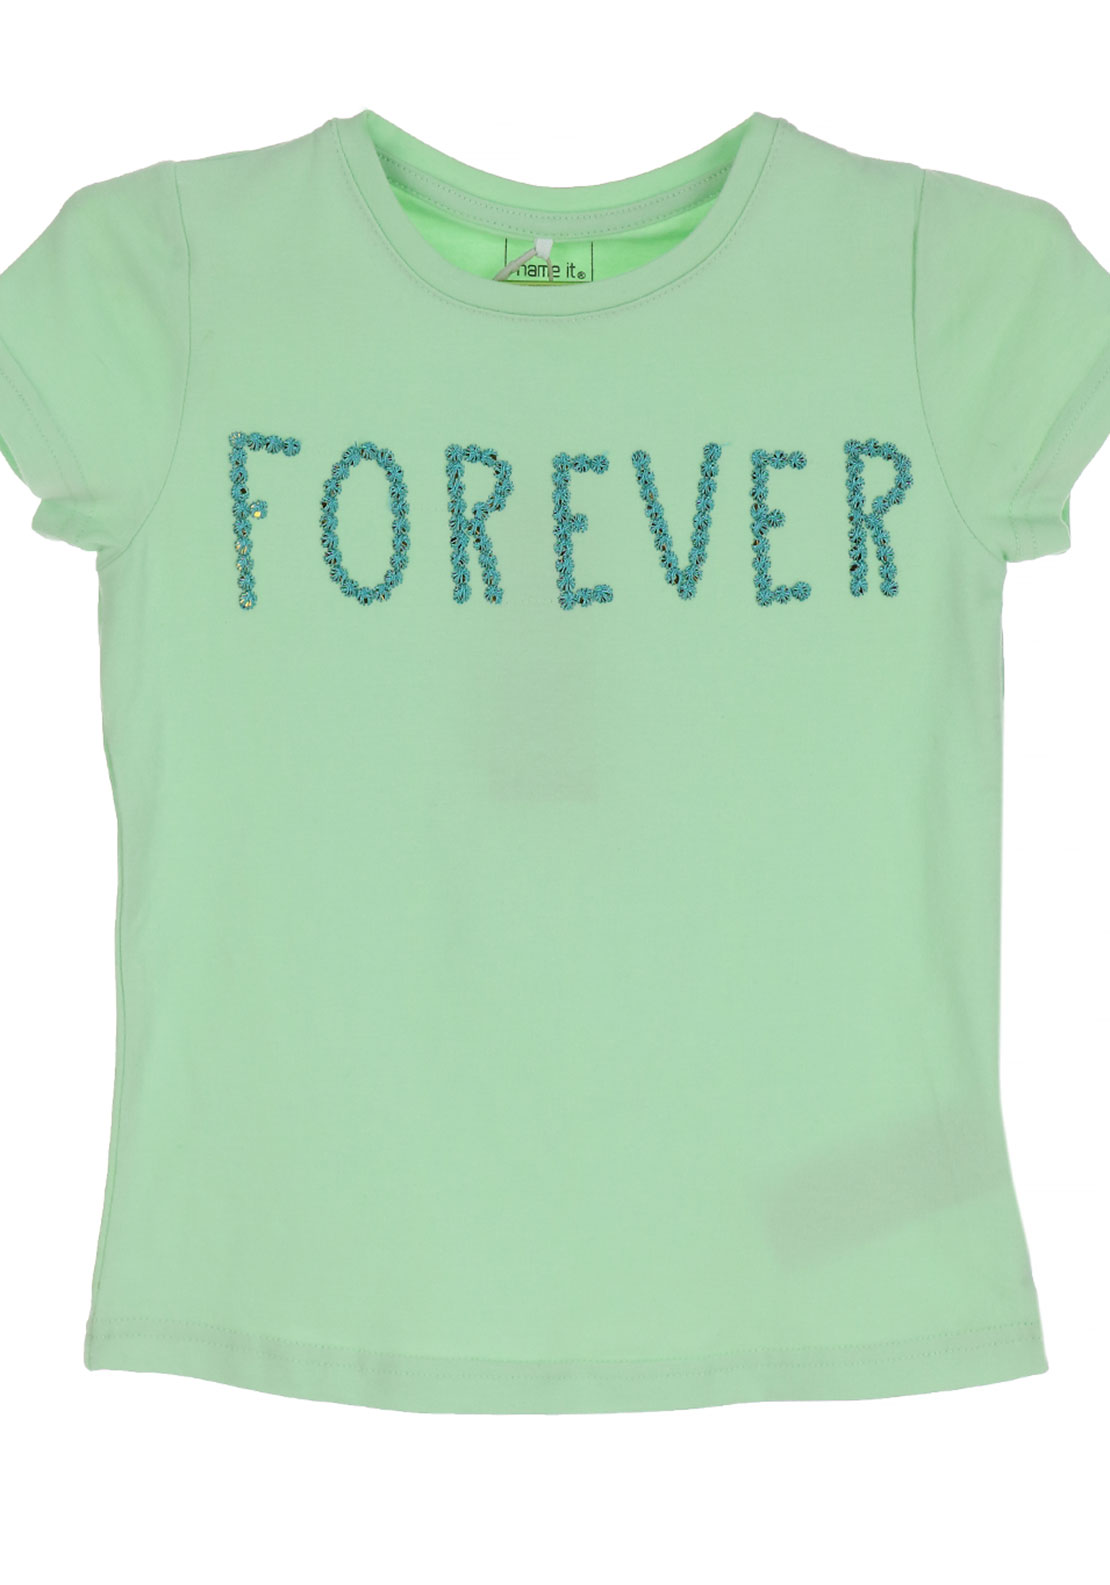 Name It Girls Haminna Forever Embroidered T-Shirt, Pastel Green